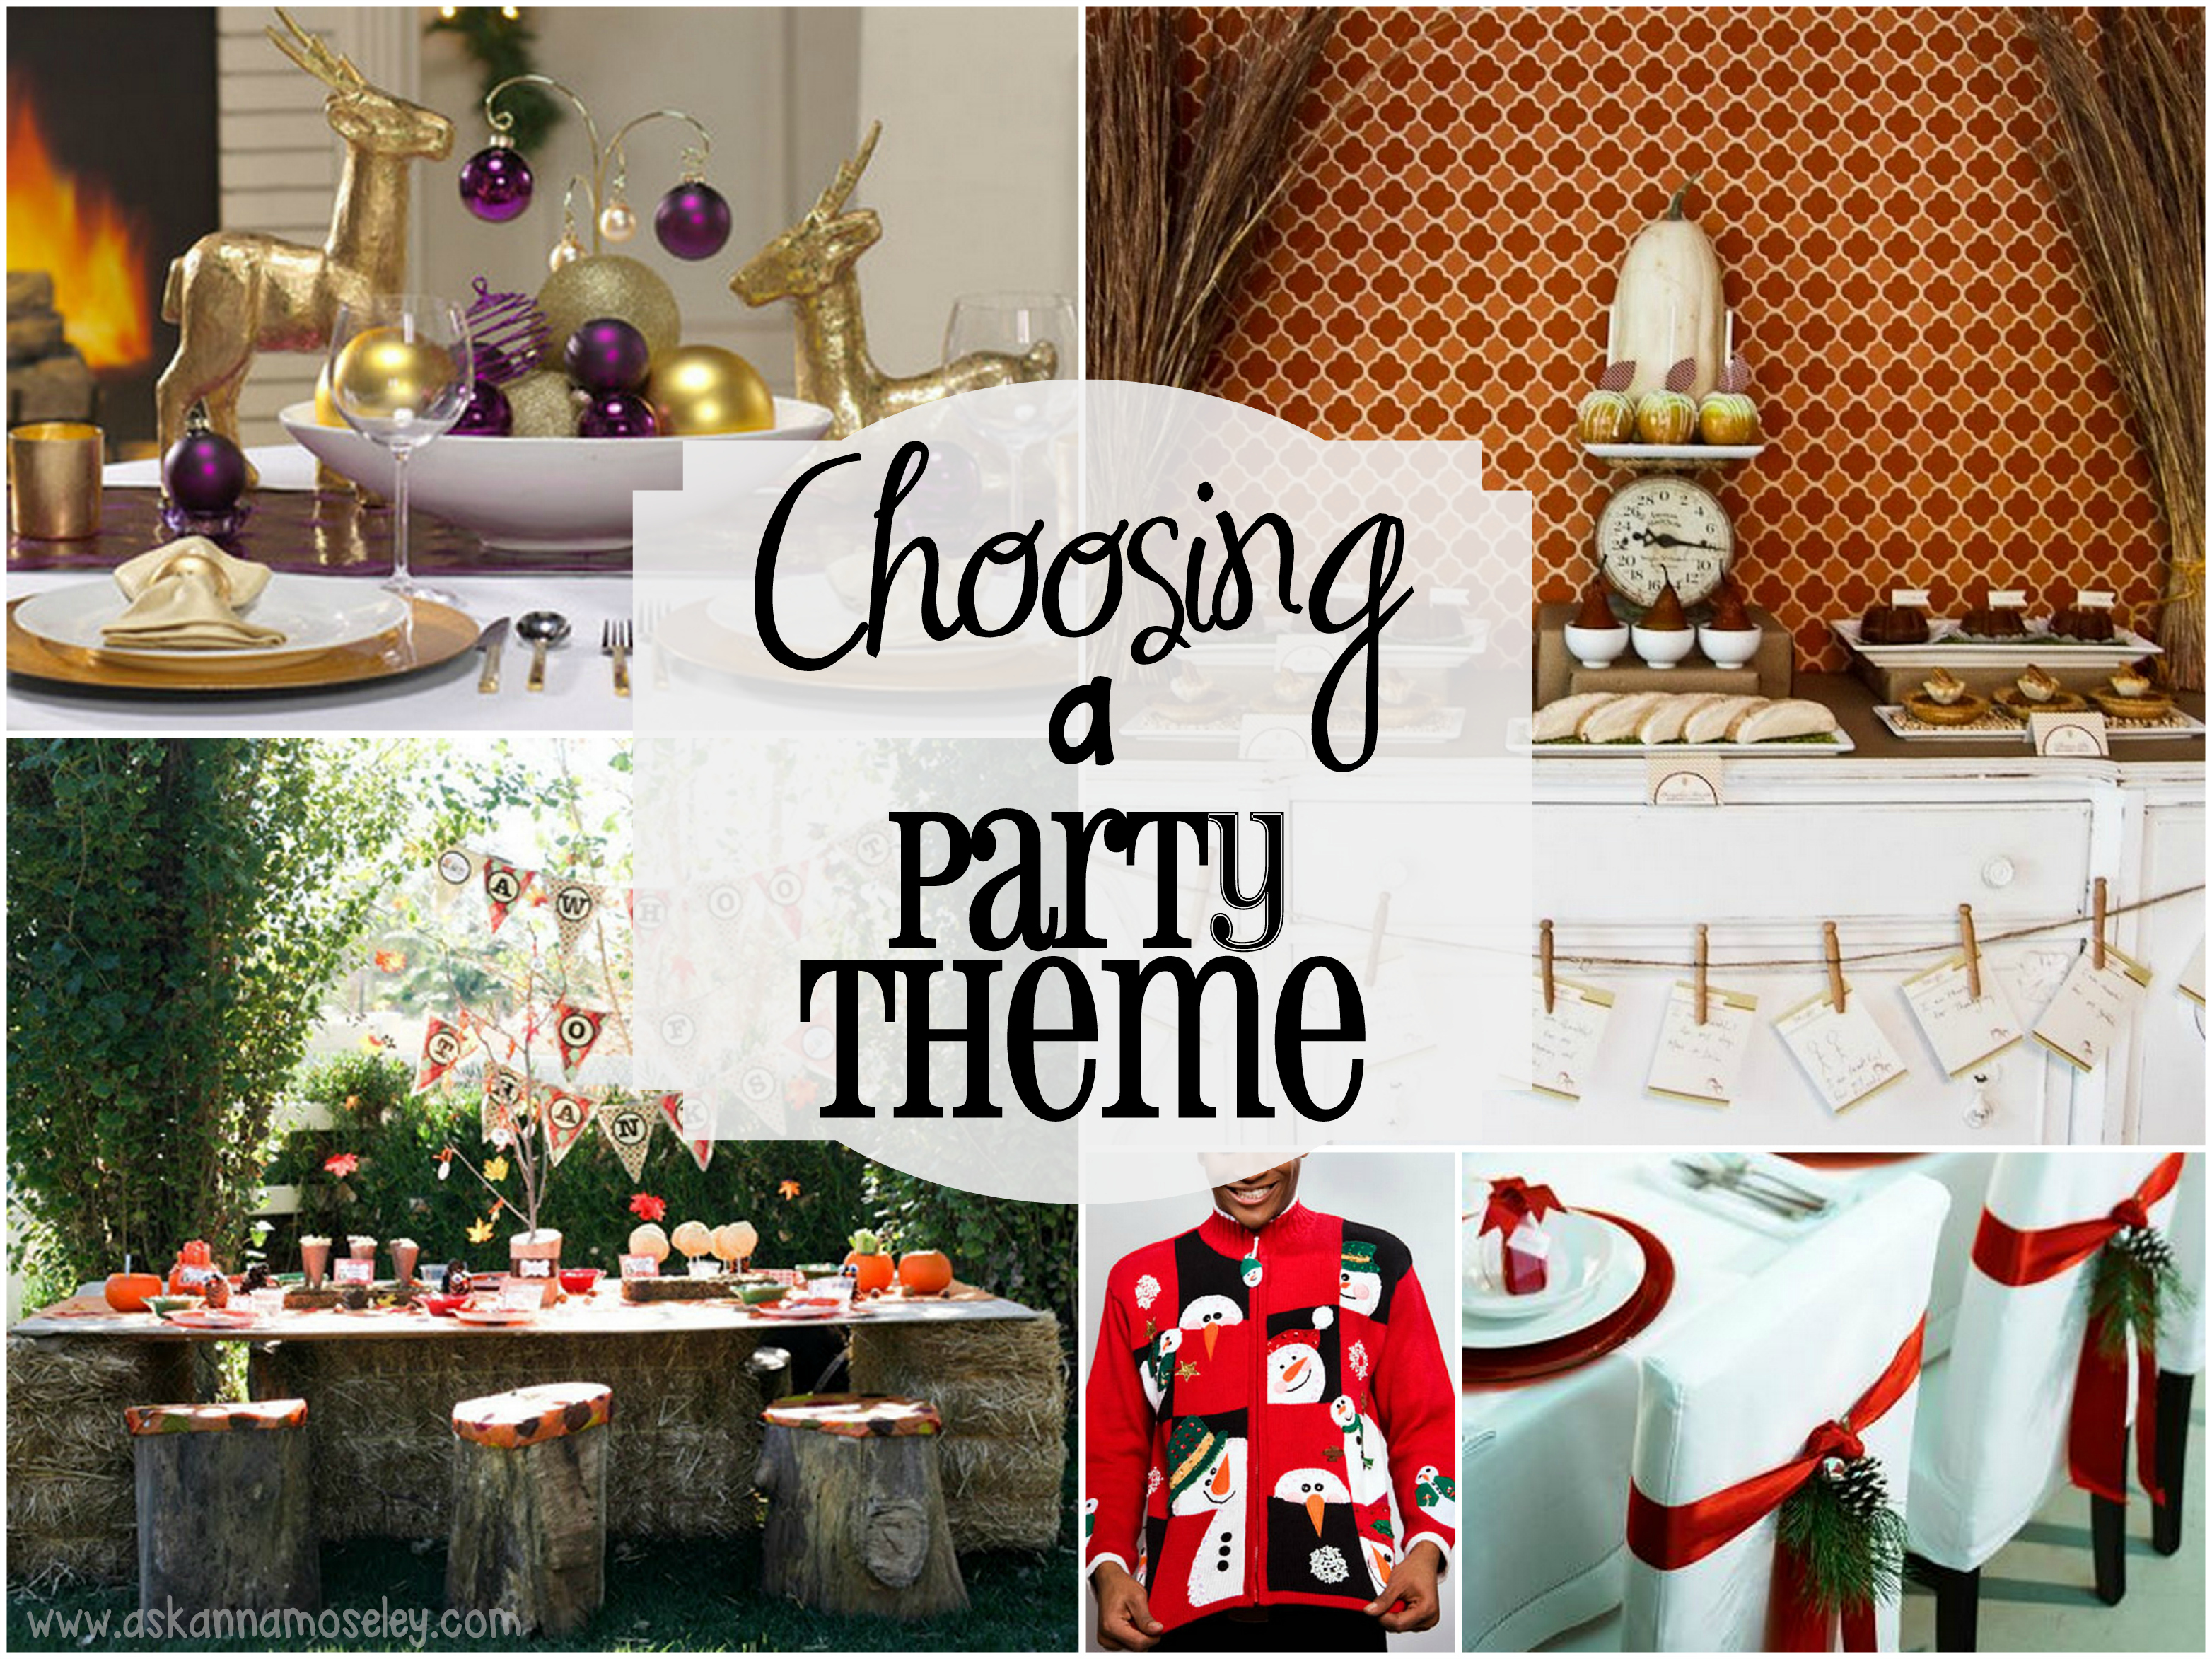 31 ways to plan a fabulous party choosing a theme ask anna